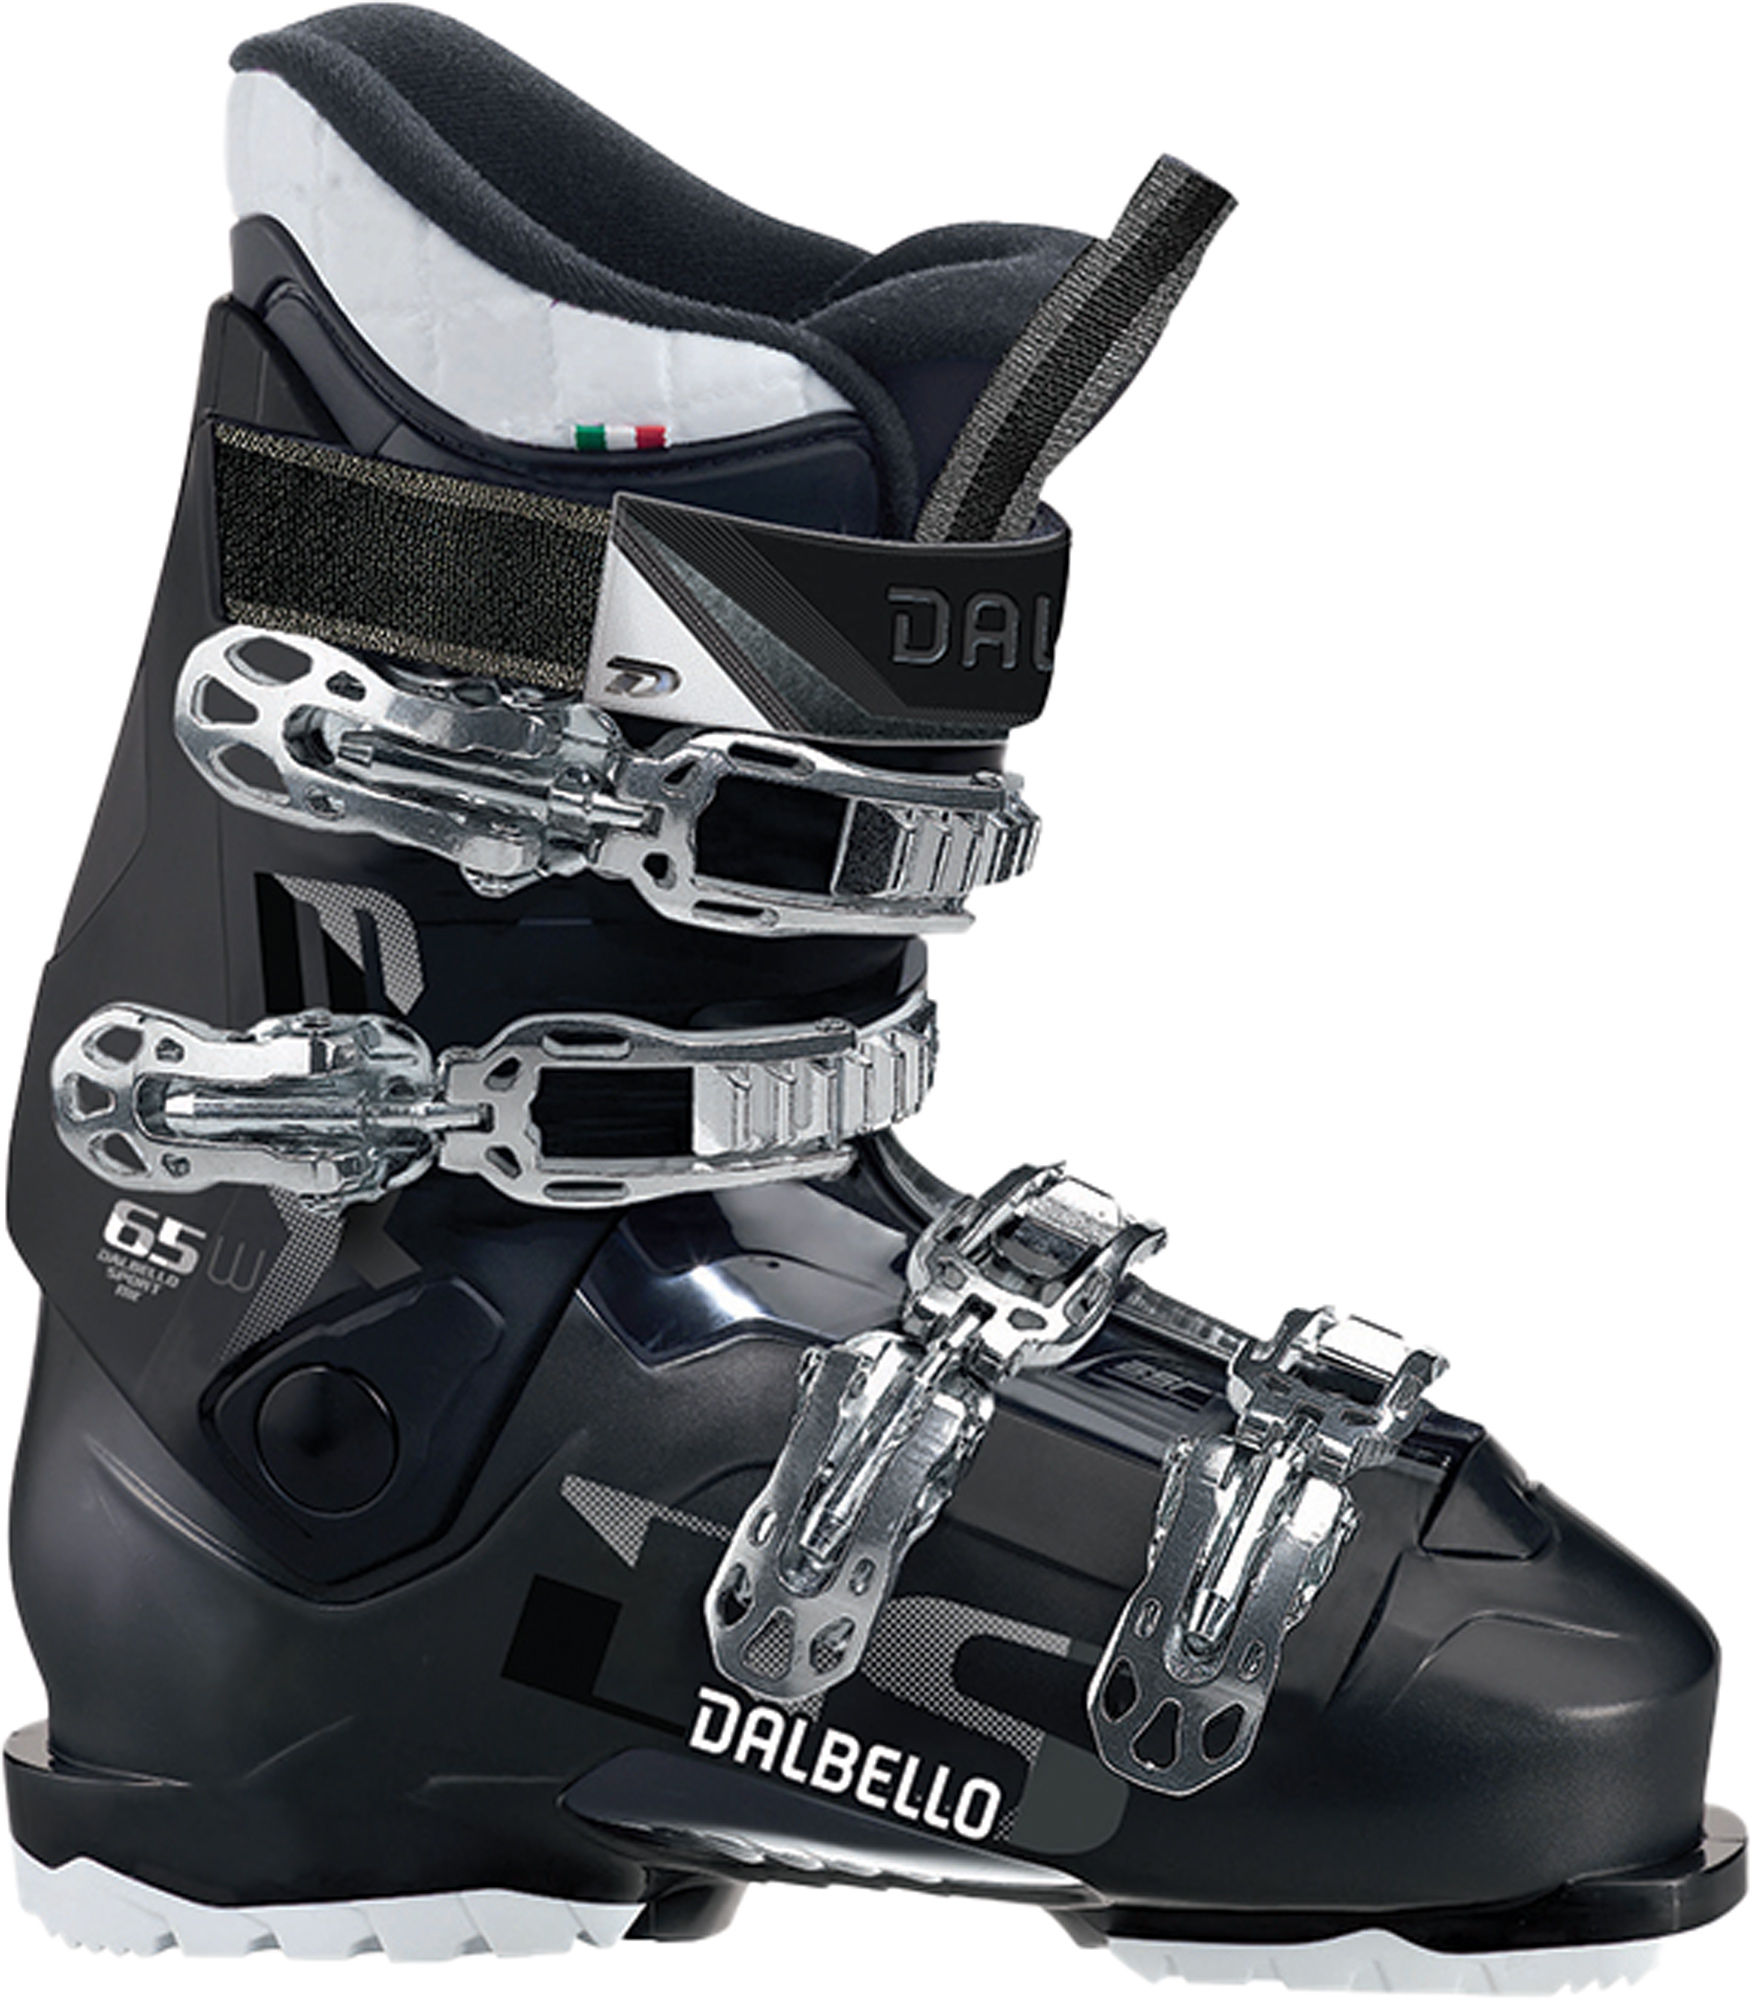 Dalbello Womens Ski Boot Size Chart All About Shoes